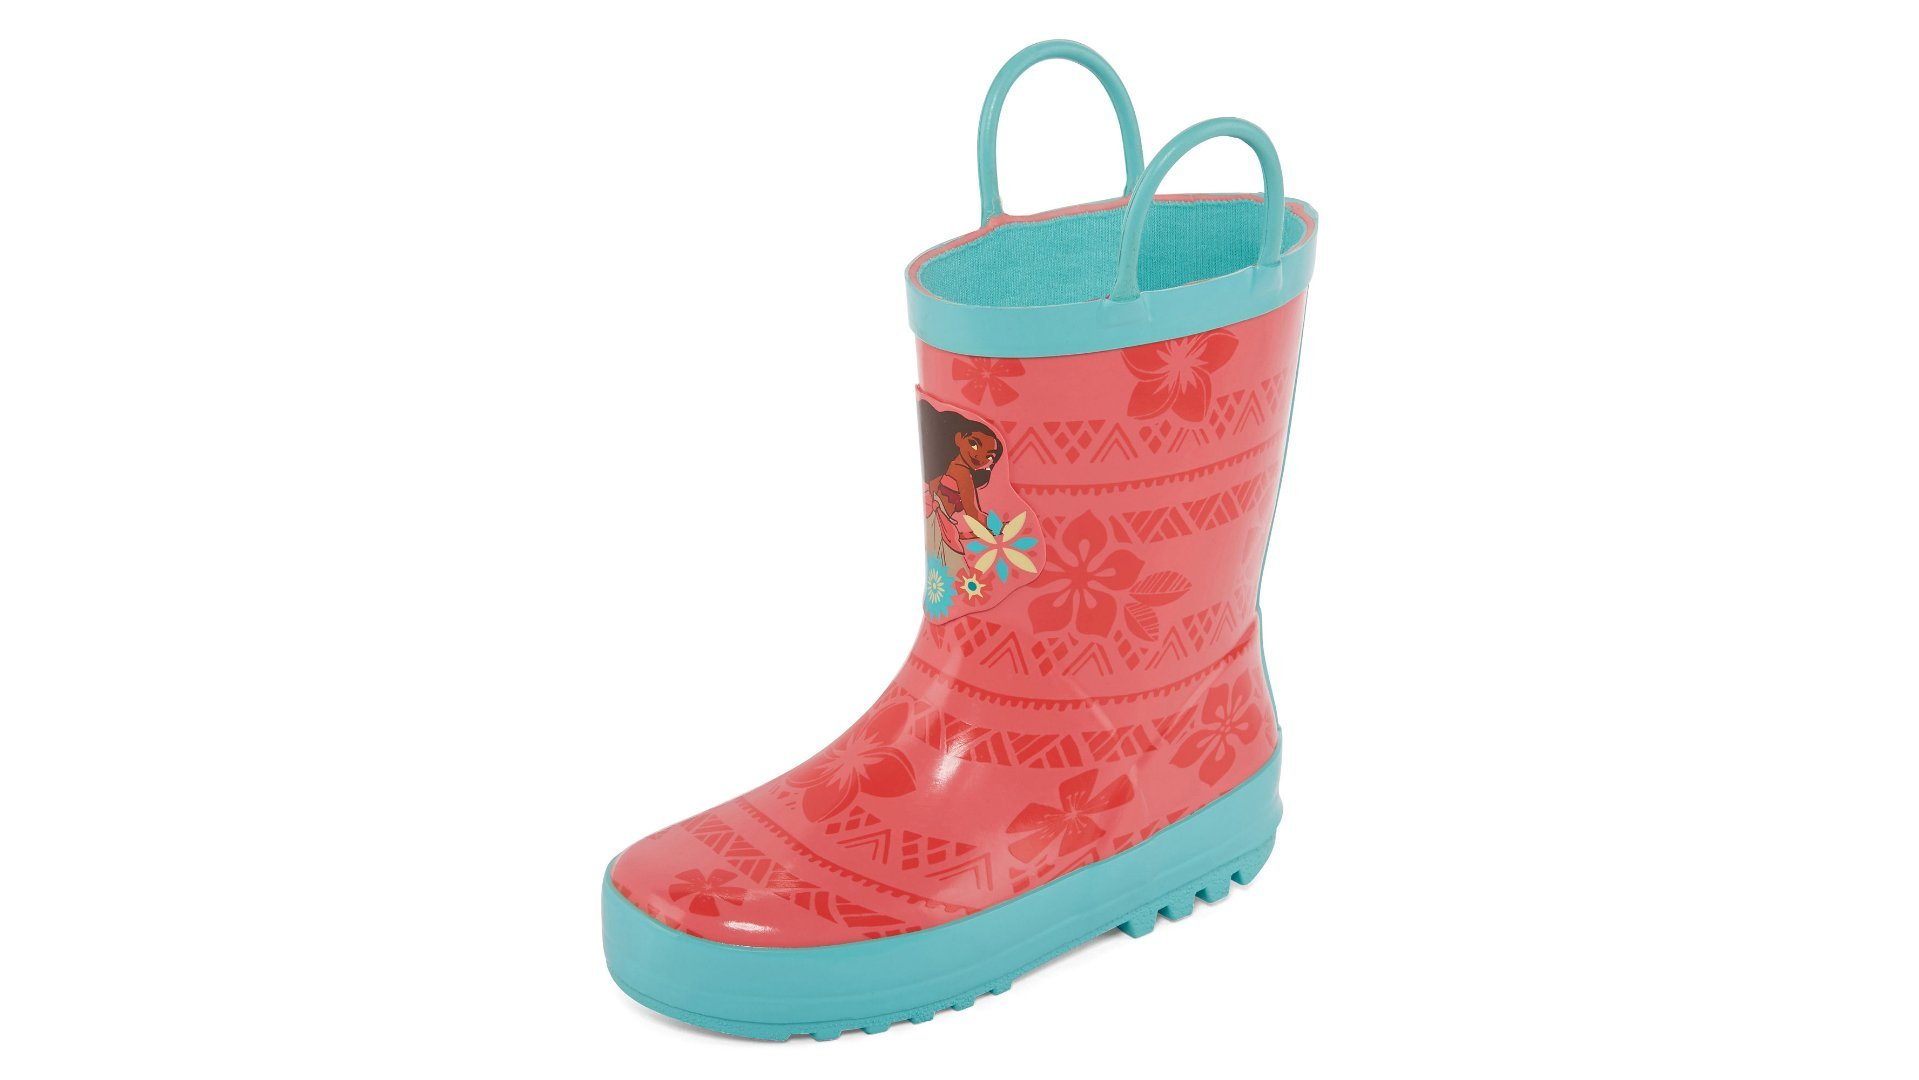 Disney Moana Little Girls or Toddler Rain Boots (1 (Little Kid)) by Disney (Image #1)